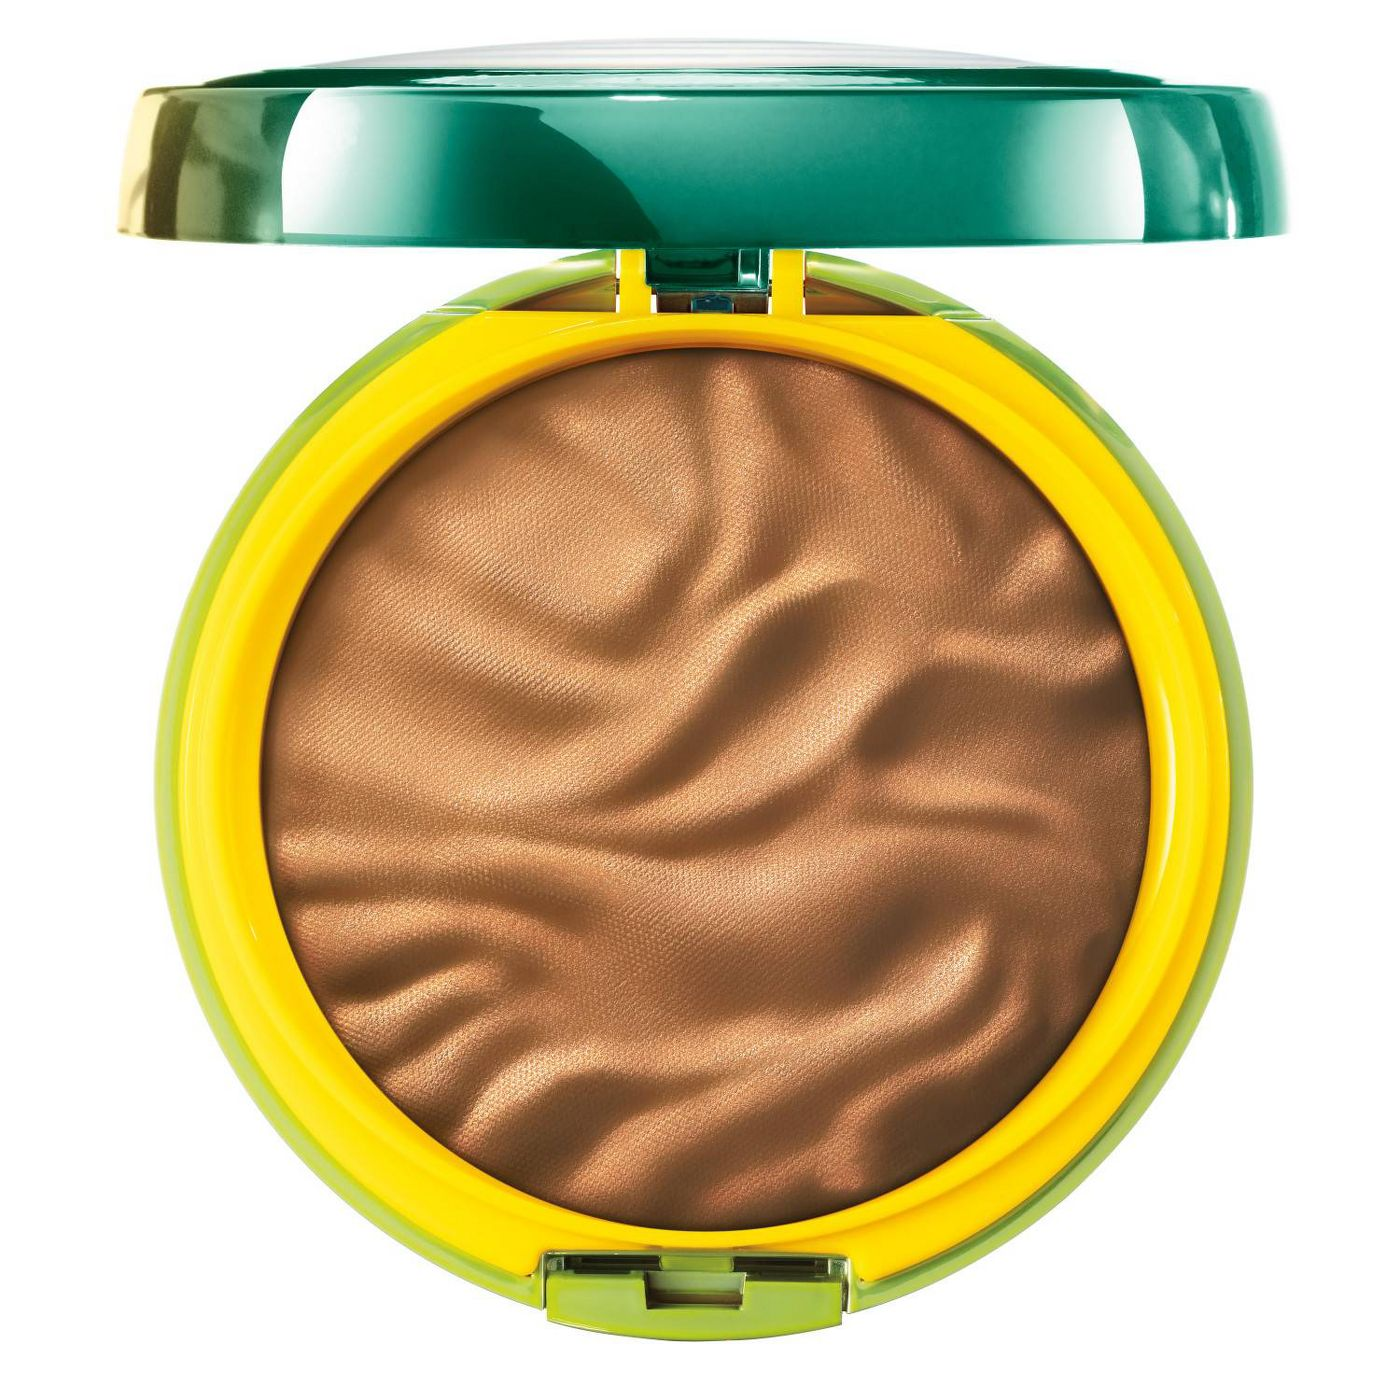 Check out Physicians formula butter bronzer for a gorgeous budget friendly bronzer